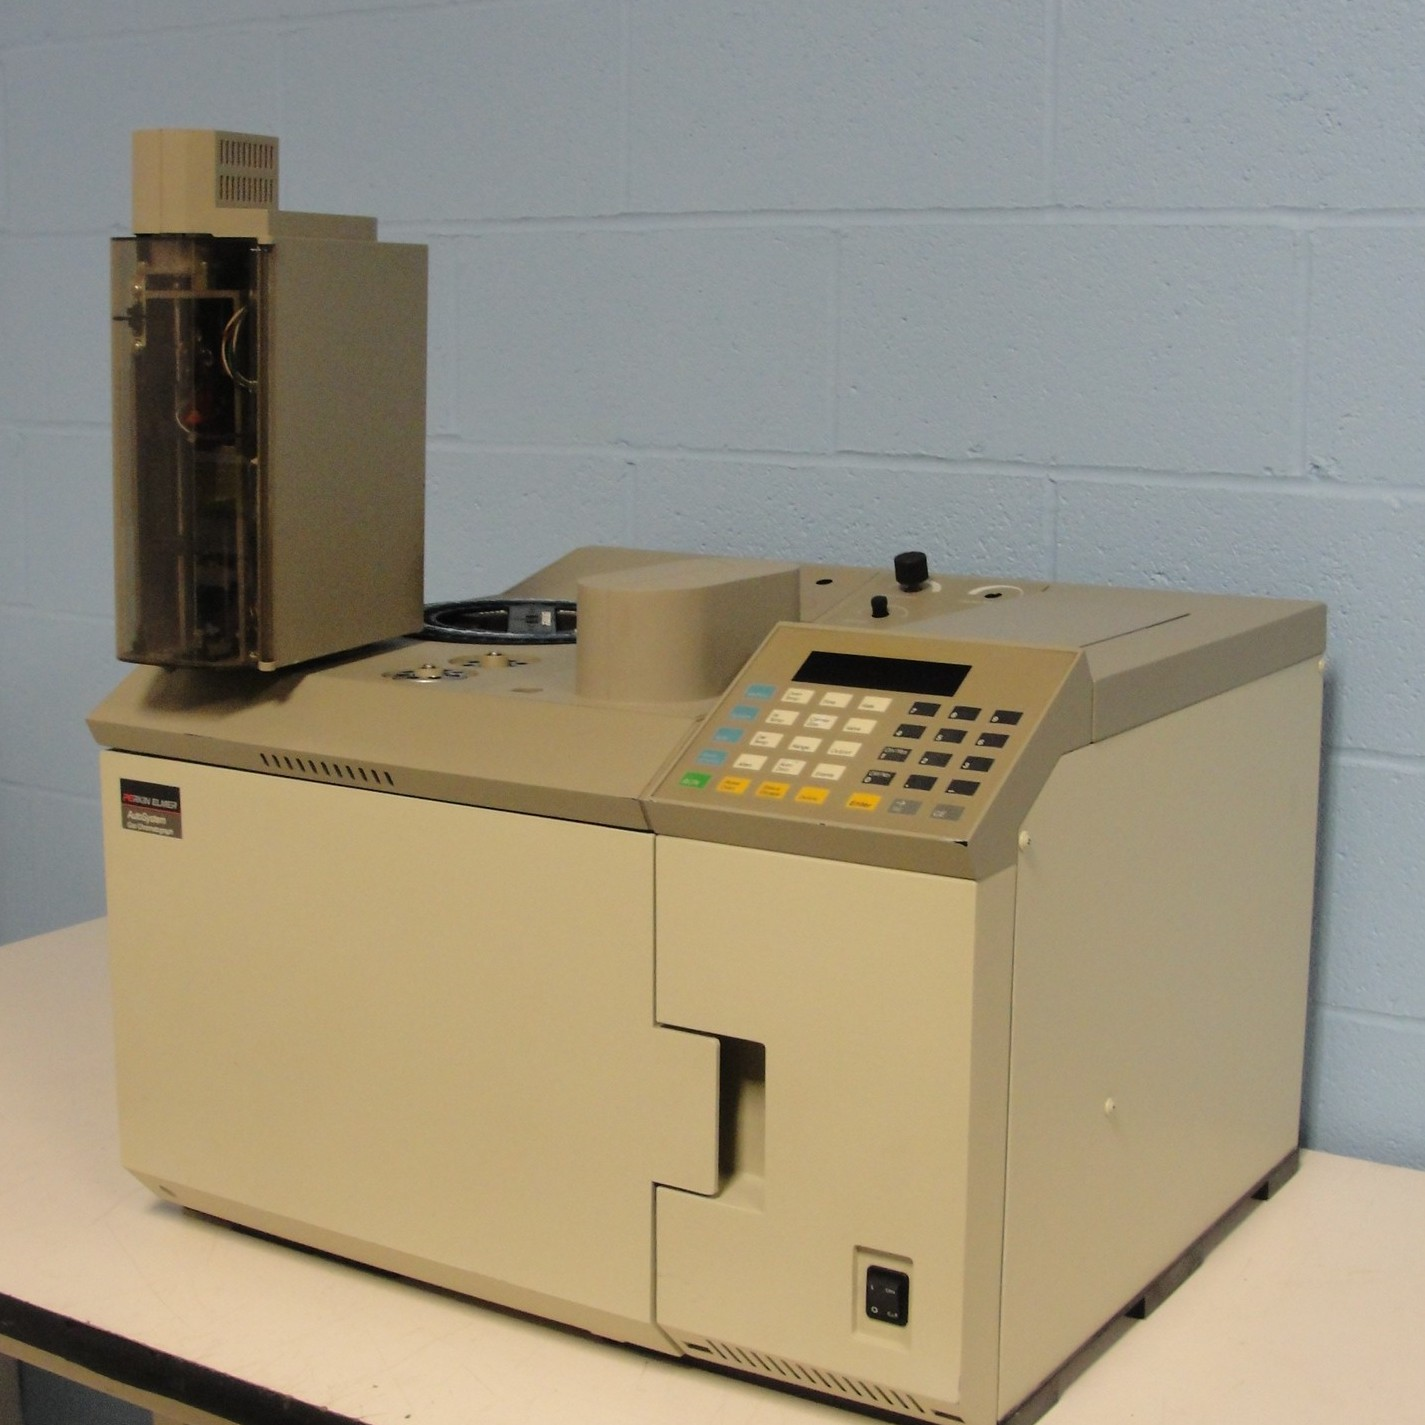 Perkin Elmer Autosystem Gas Chromatograph with Dual Split/Splitless Injectors Image